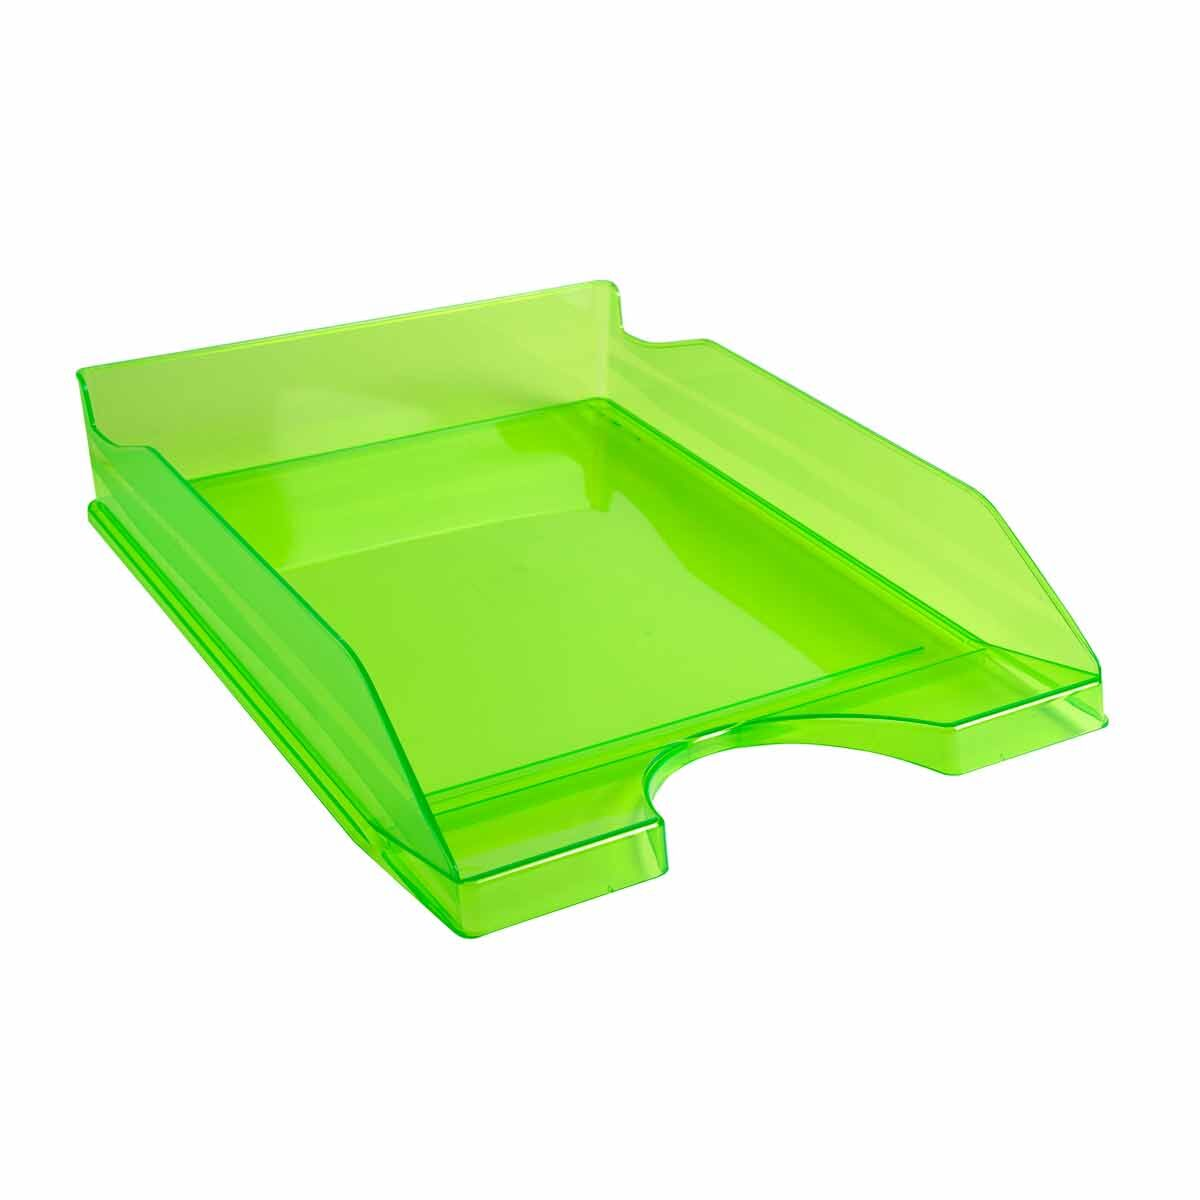 Exacompta Linicolor Eco Letter Tray Pack of 10 Apple Green